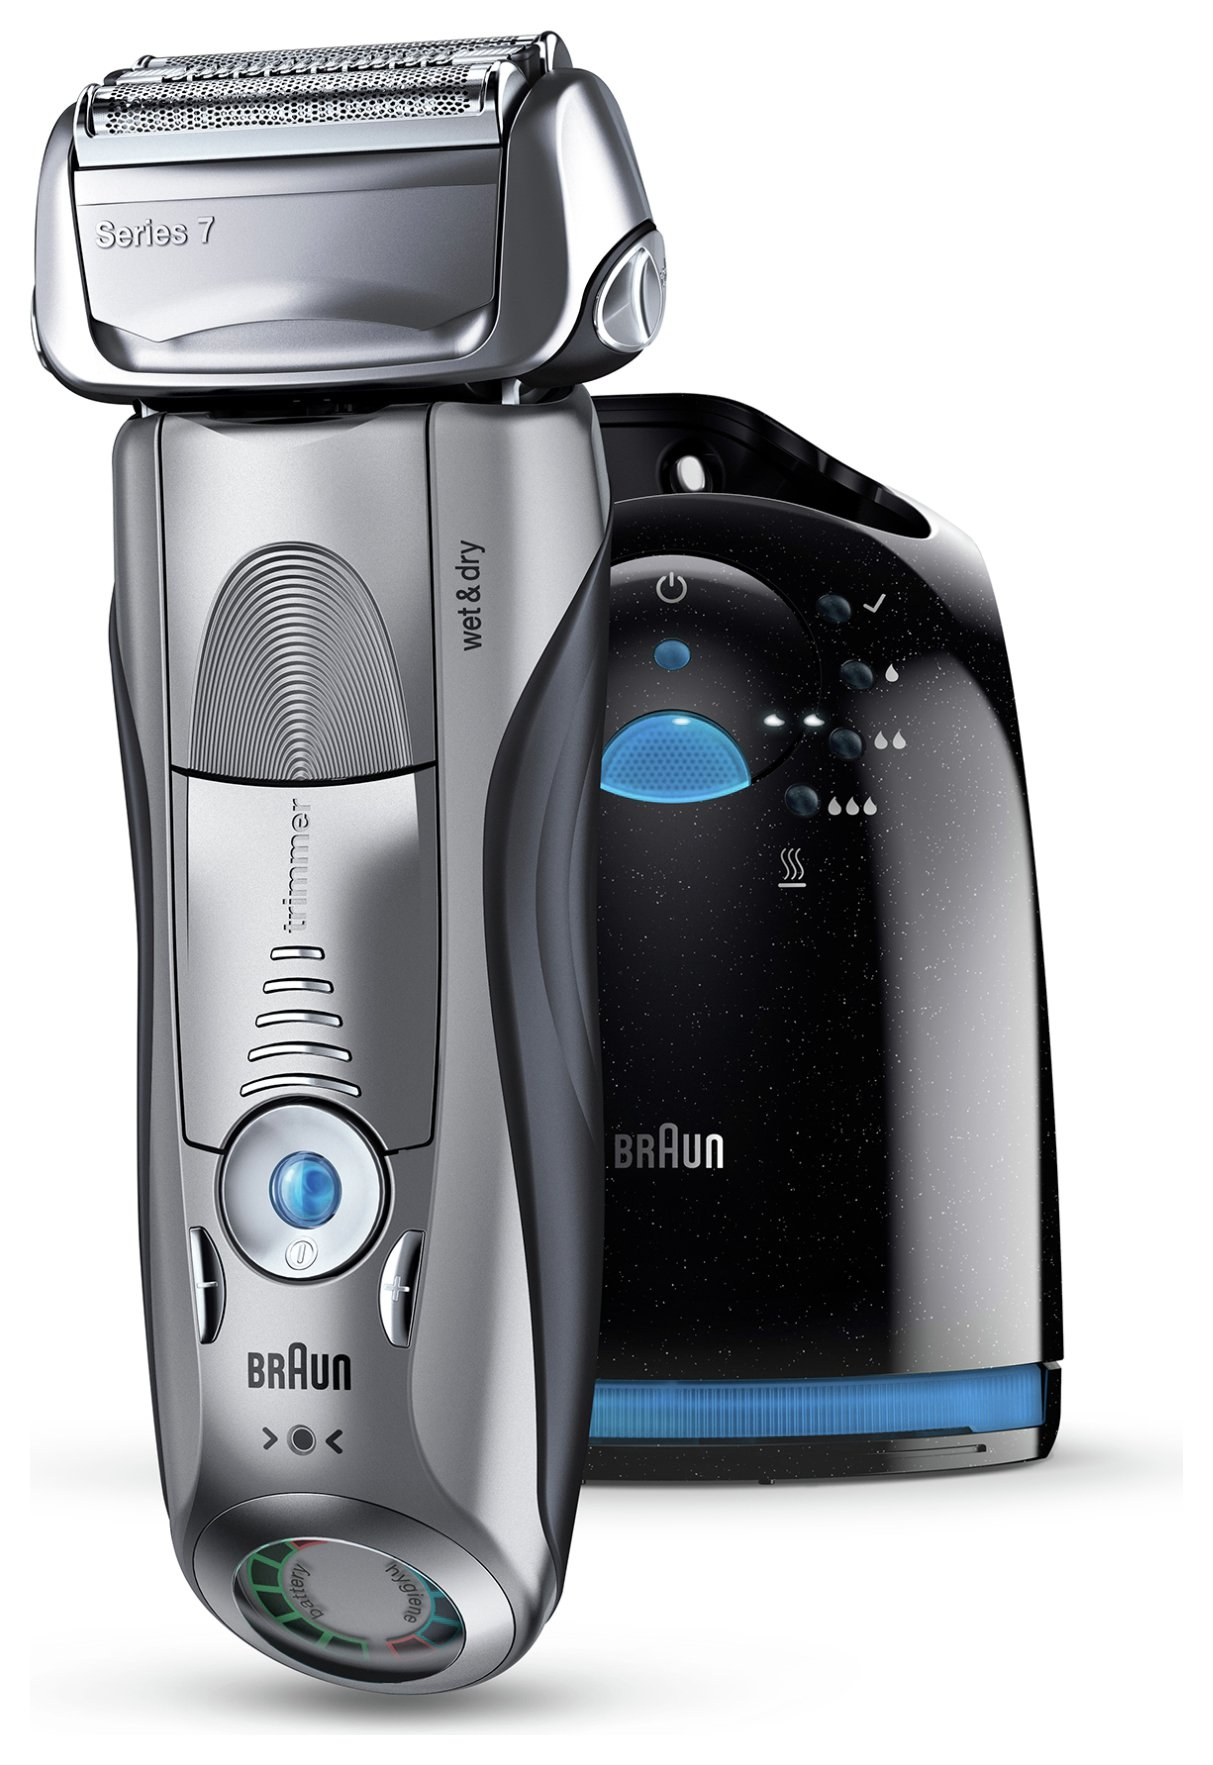 braun shaver series 7 price streaming with english subtitles 1440 ciatchochar mp3. Black Bedroom Furniture Sets. Home Design Ideas